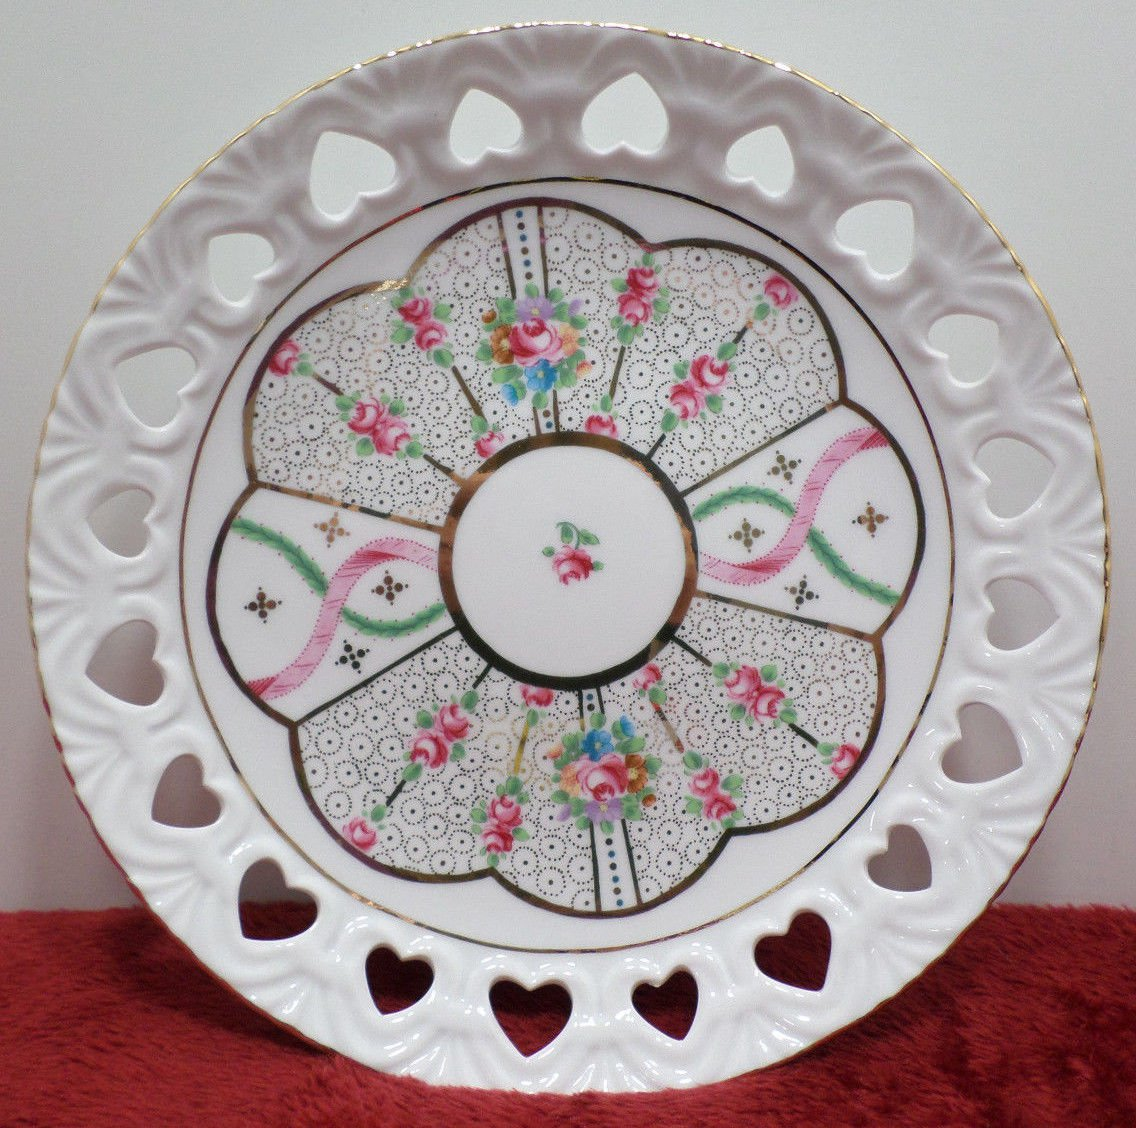 Collector Plate with Cut Out Hearts Around Rim Pink Floral Design